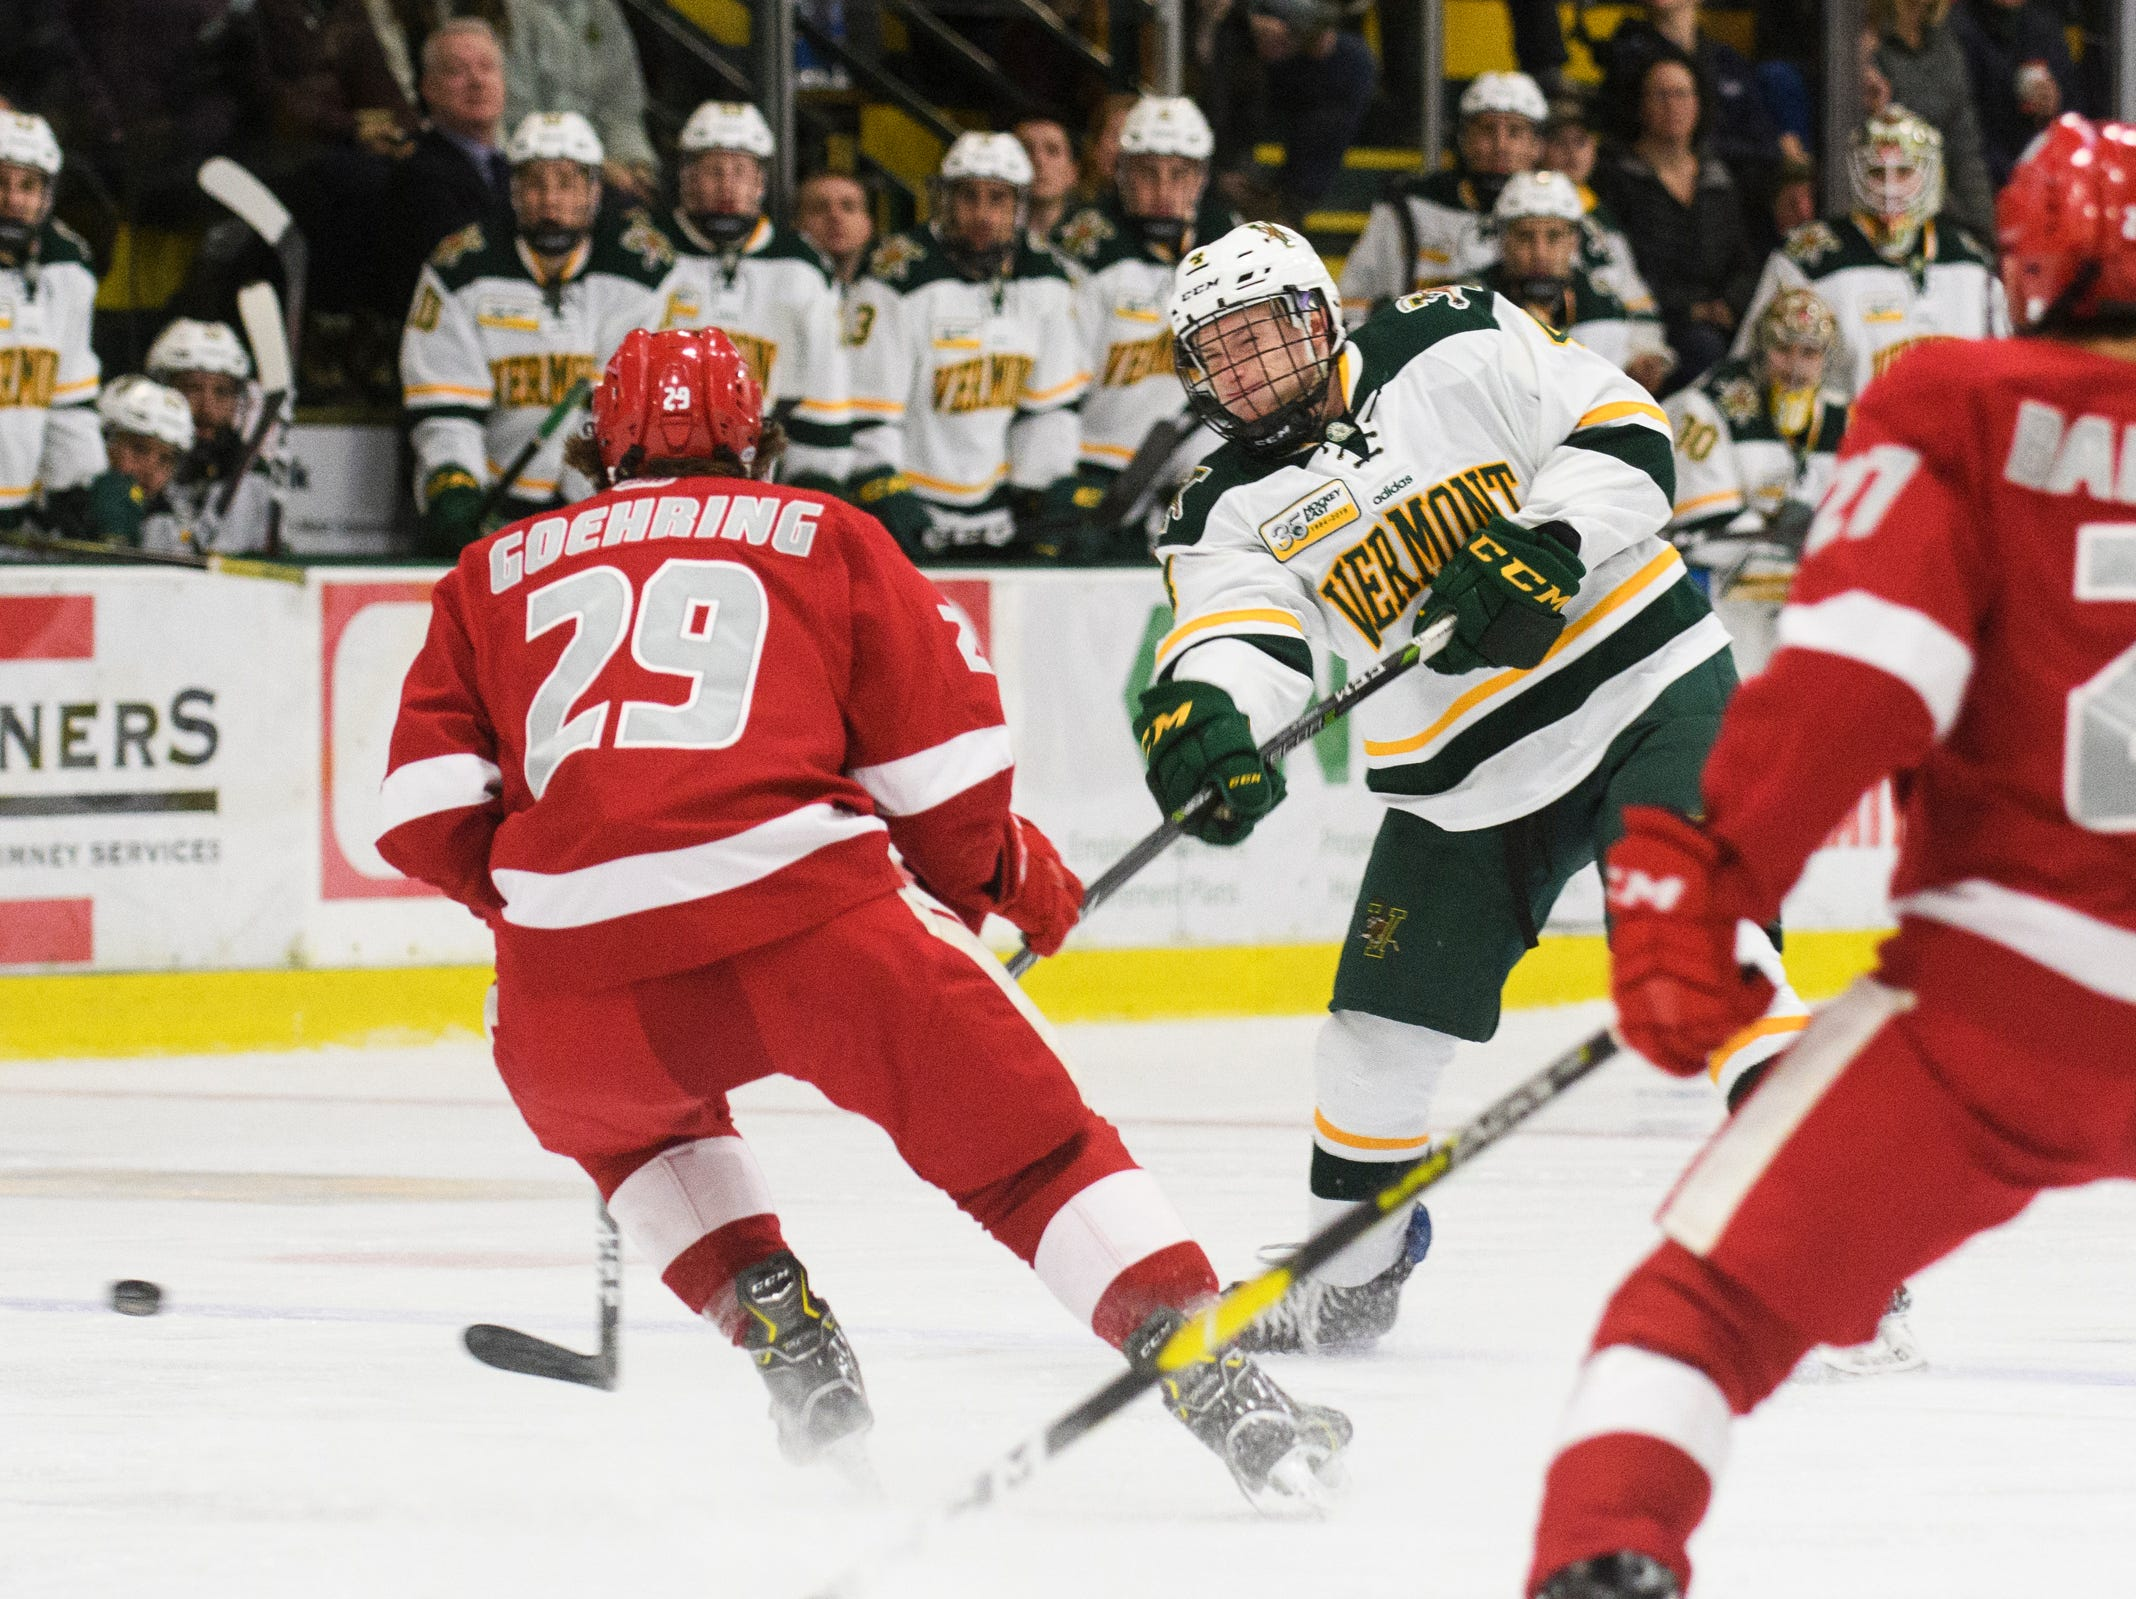 Vermont defenseman Owen Grant (4) shoots the puck during the men's hockey game between the Sacred Heart Pioneers and the Vermont Catamounts at Gutterson Field House on Friday night January 4, 2019 in Burlington.